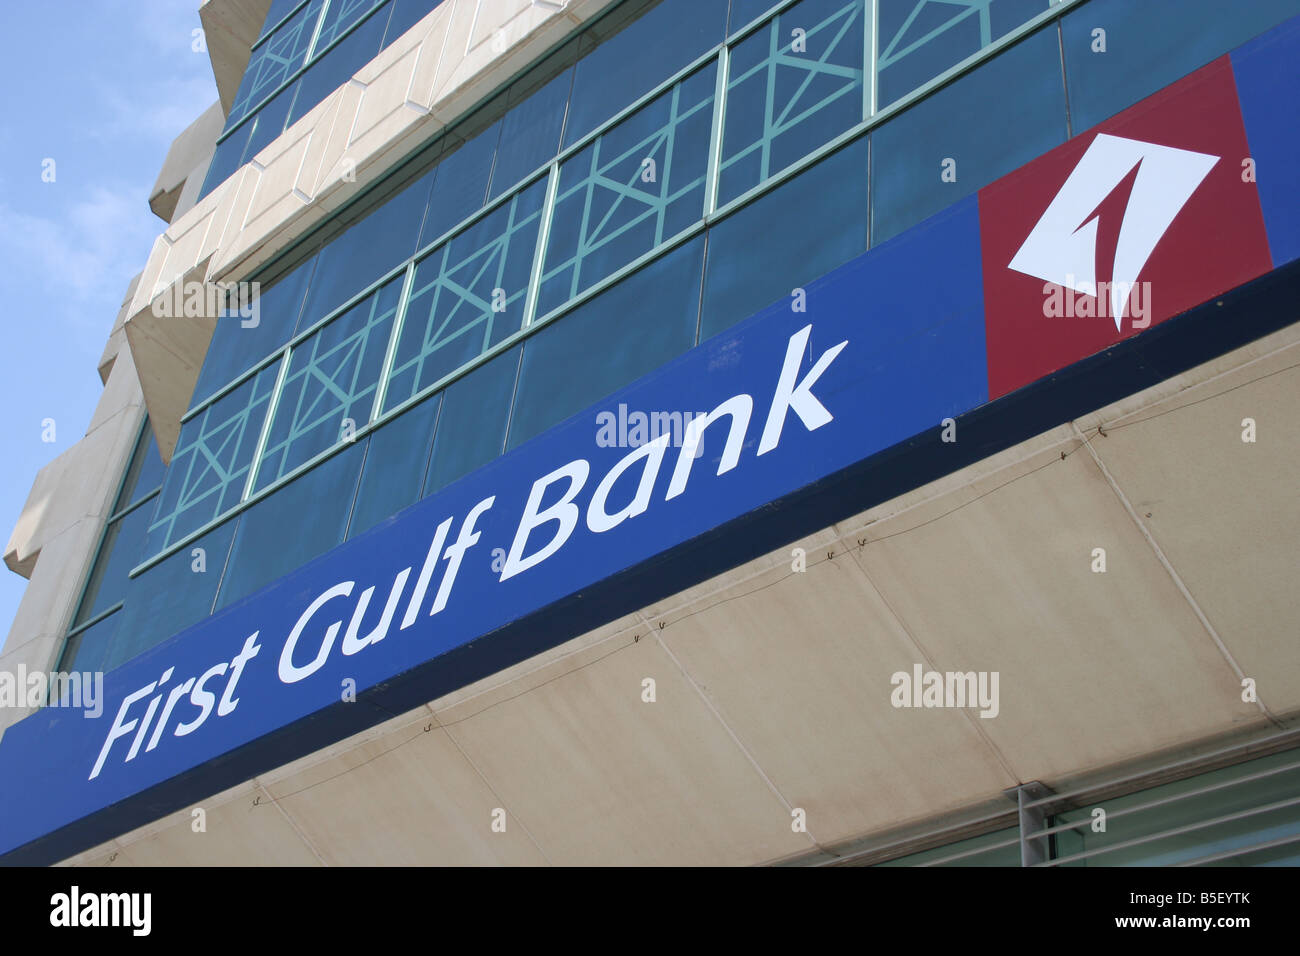 First Gulf Bank Building Exterior sign Abu Dhabi